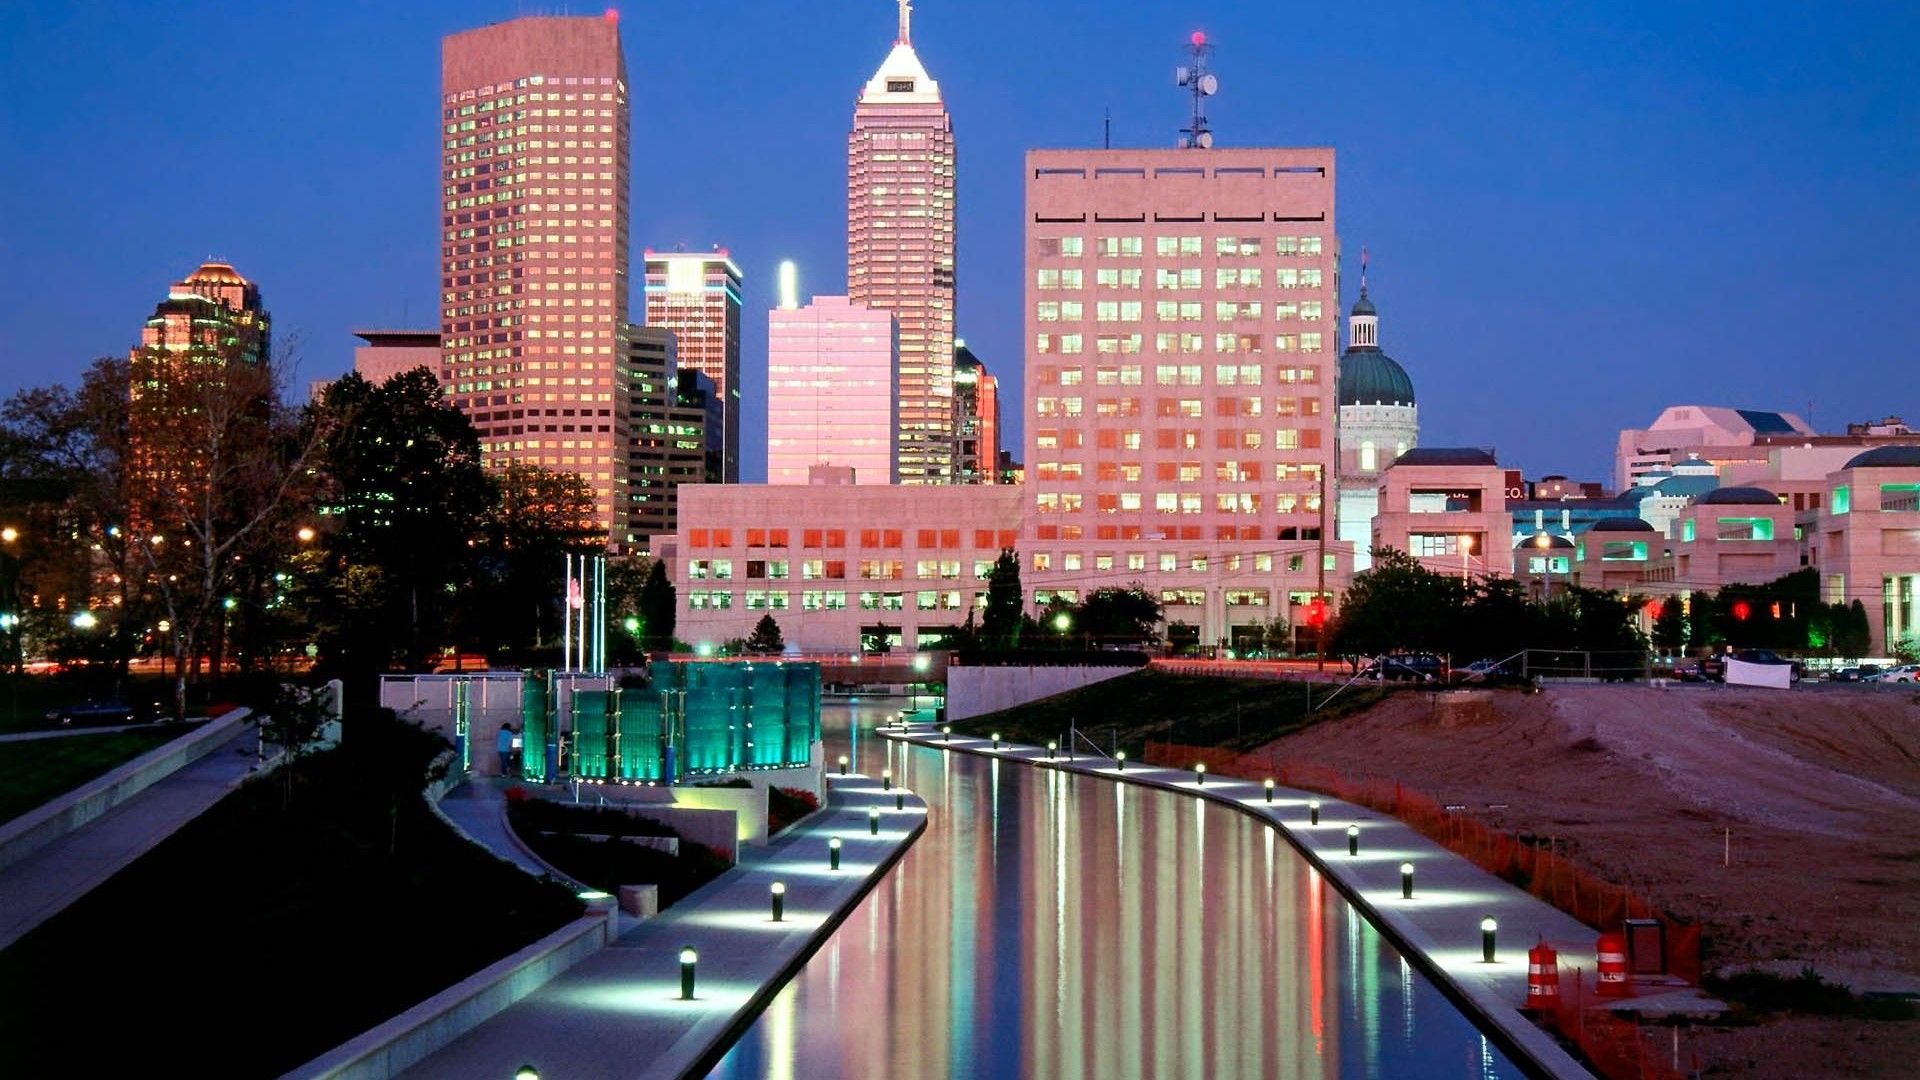 Hd City Indianapolis Architecture Wallpapers Architecture Wallpaper Cityscape Beautiful Views